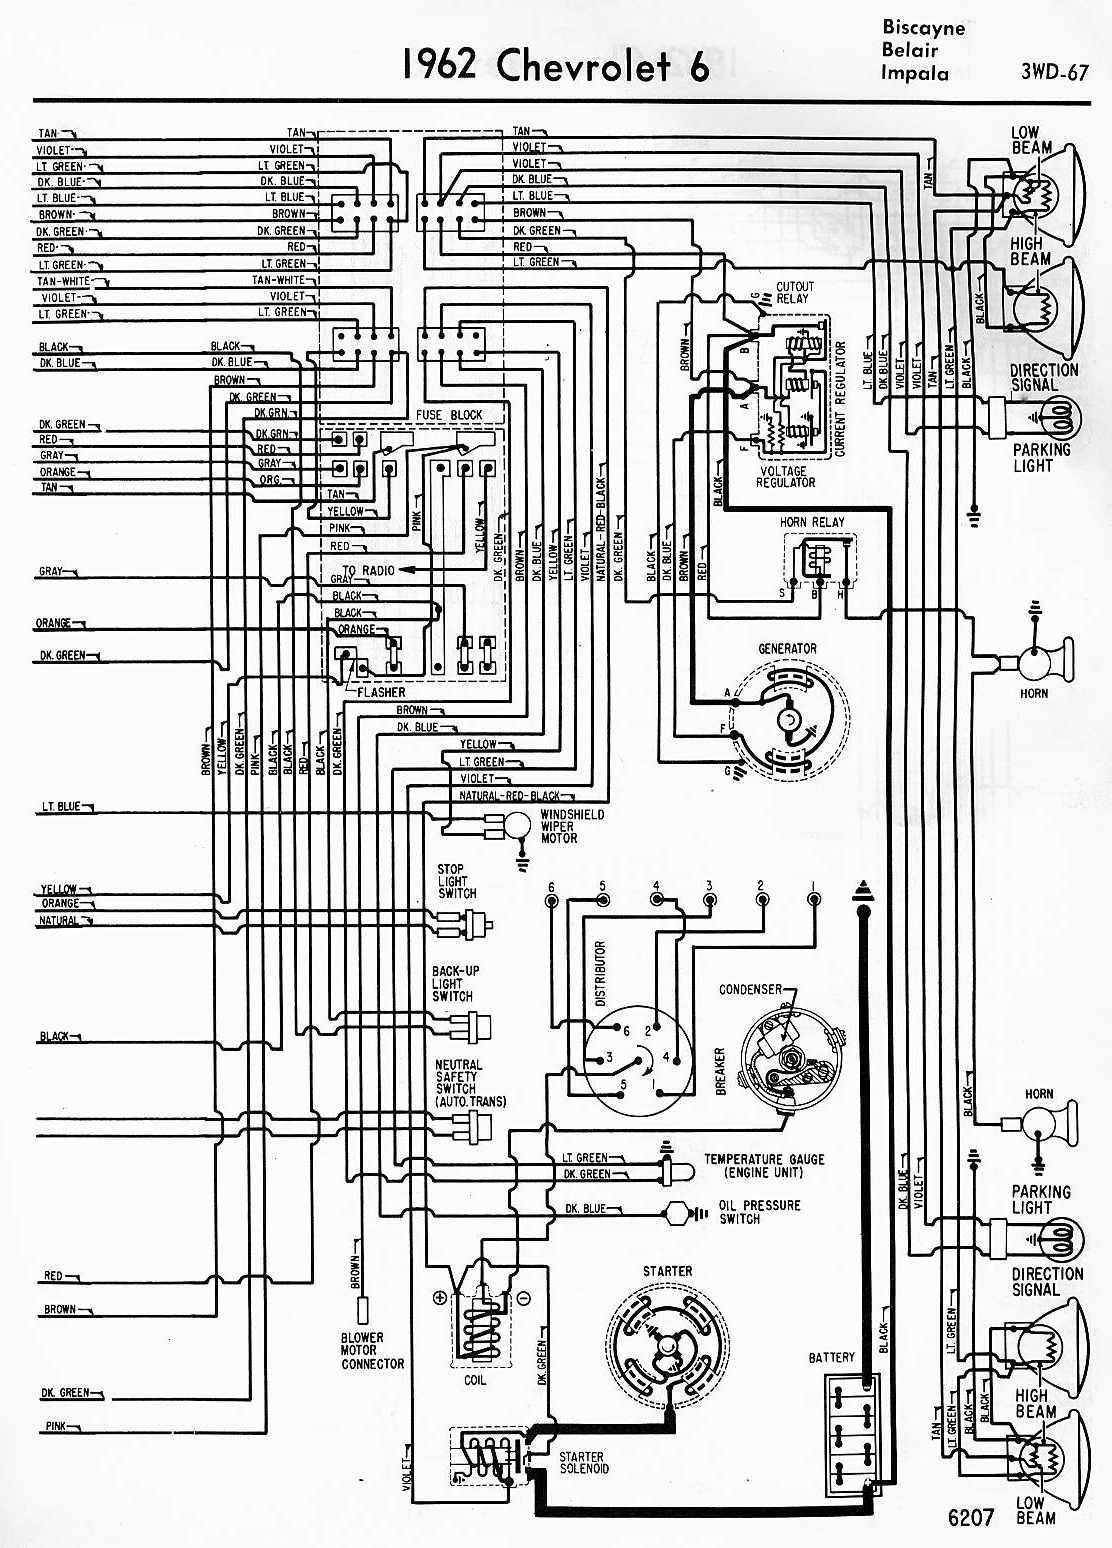 67 imperial window wiring diagram wiring diagrams rh 35 jennifer retzke de 64 imperial 65 imperial [ 1112 x 1548 Pixel ]